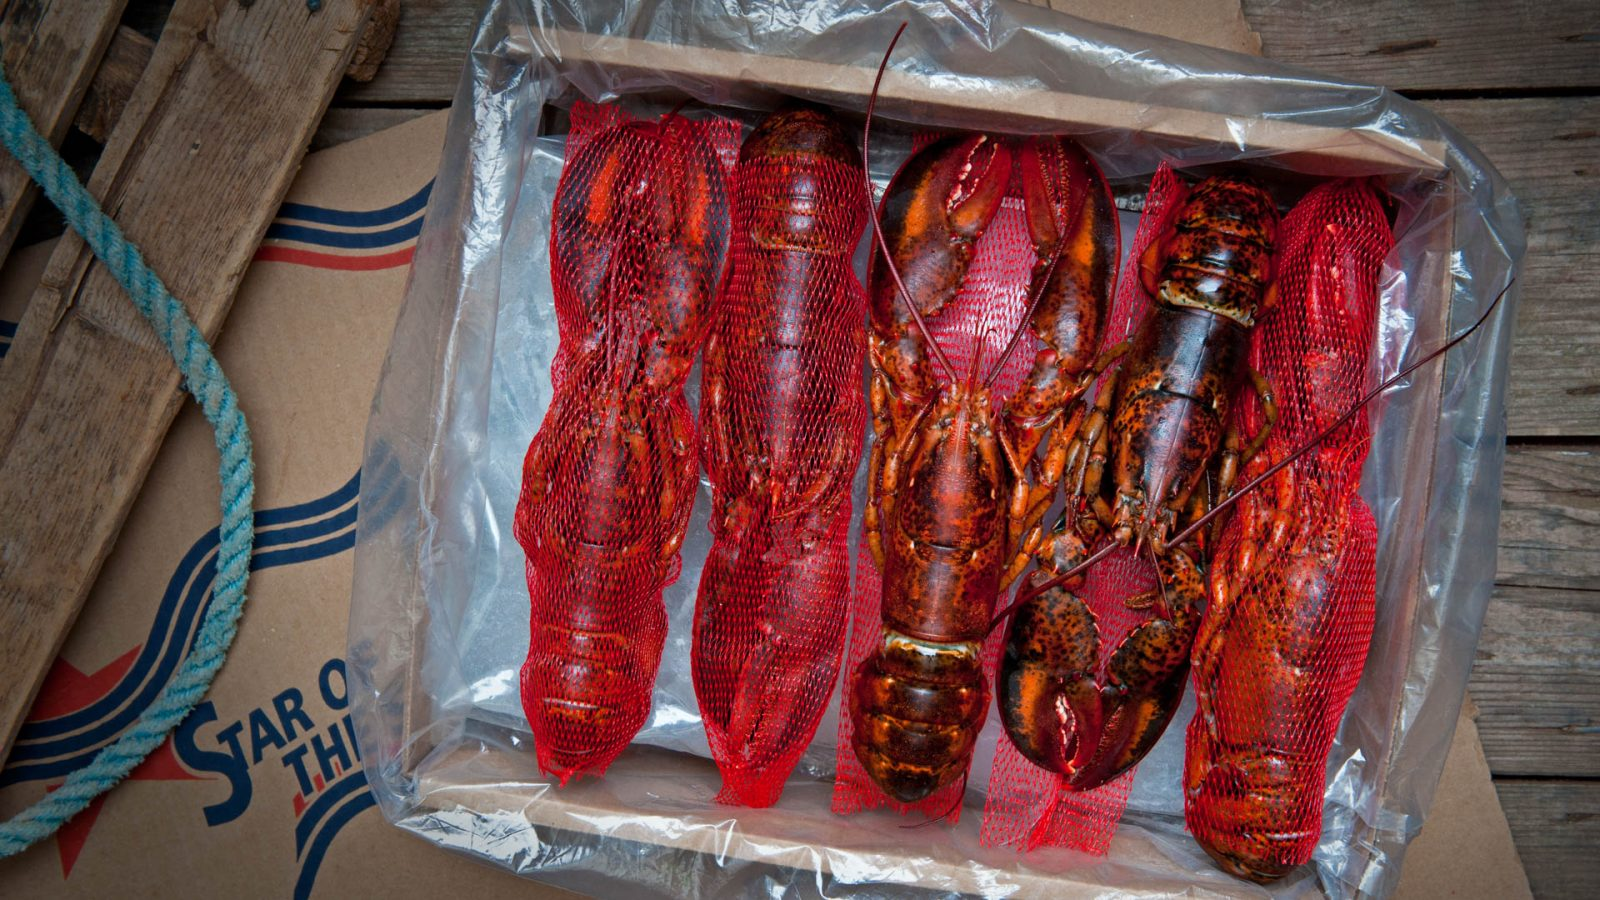 wholesale blanched PEI lobster